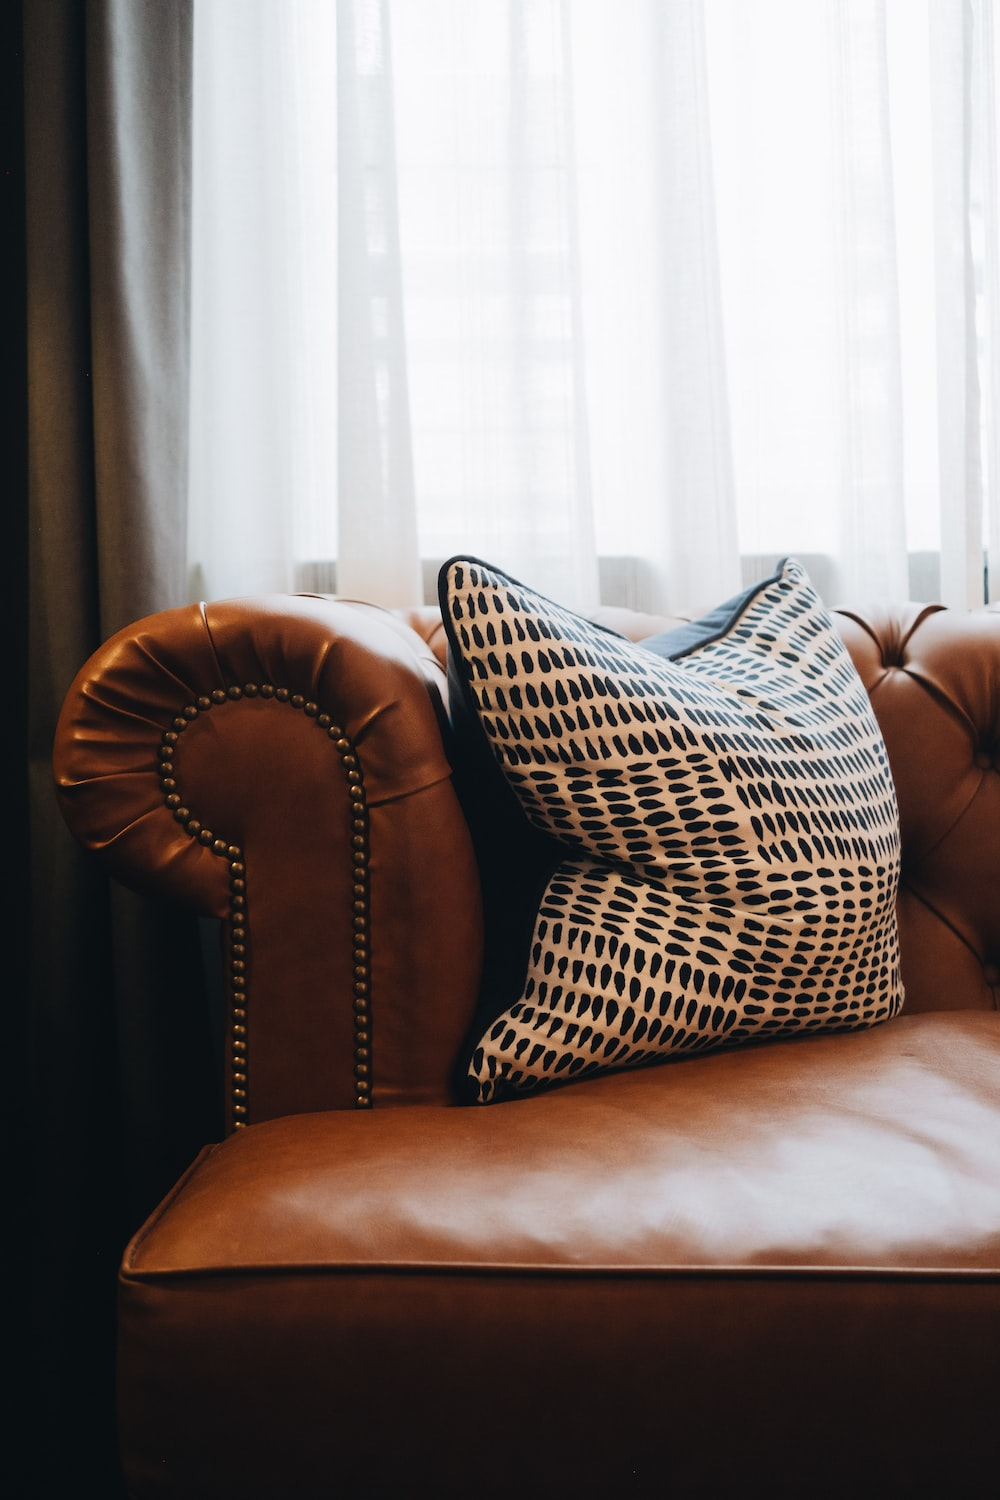 Throw Pillow On Brown Leather Couch